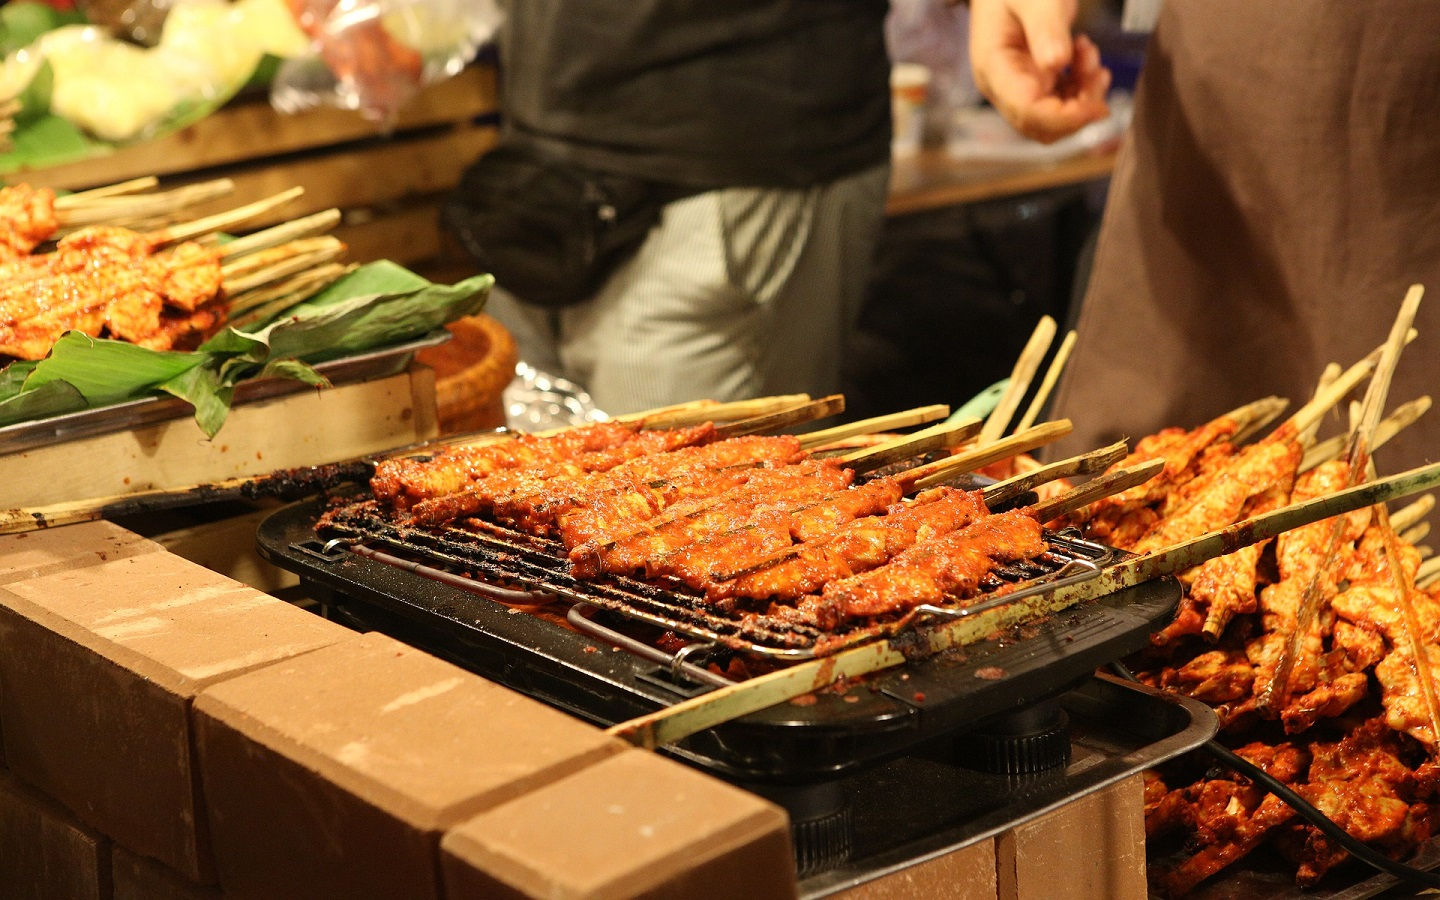 Sauteed Meat On Skewer